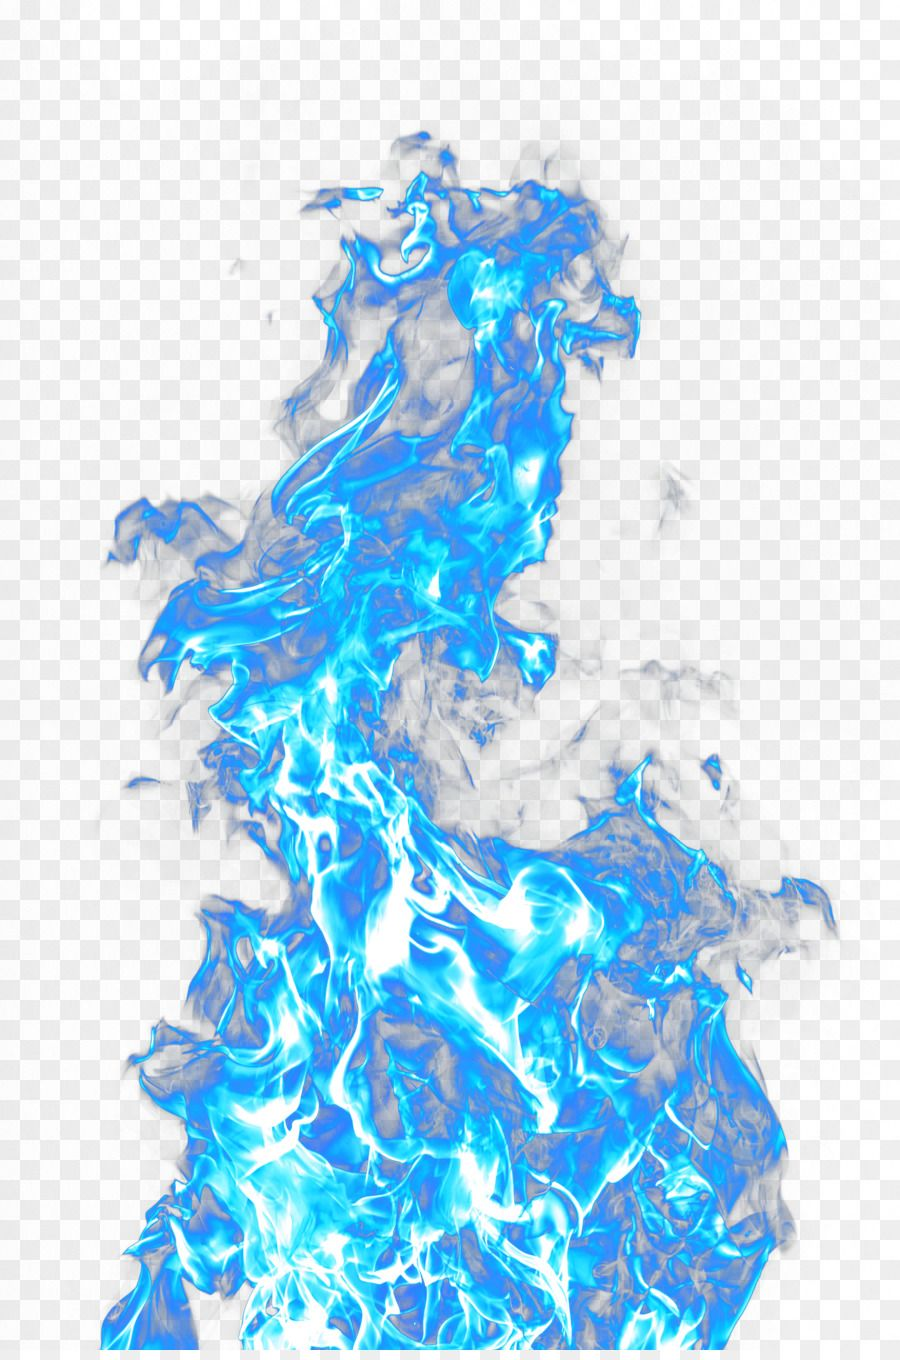 Blue Flame Png - Pin by DEANN YU on png images in 2019 | Blue flames, Picsart ...